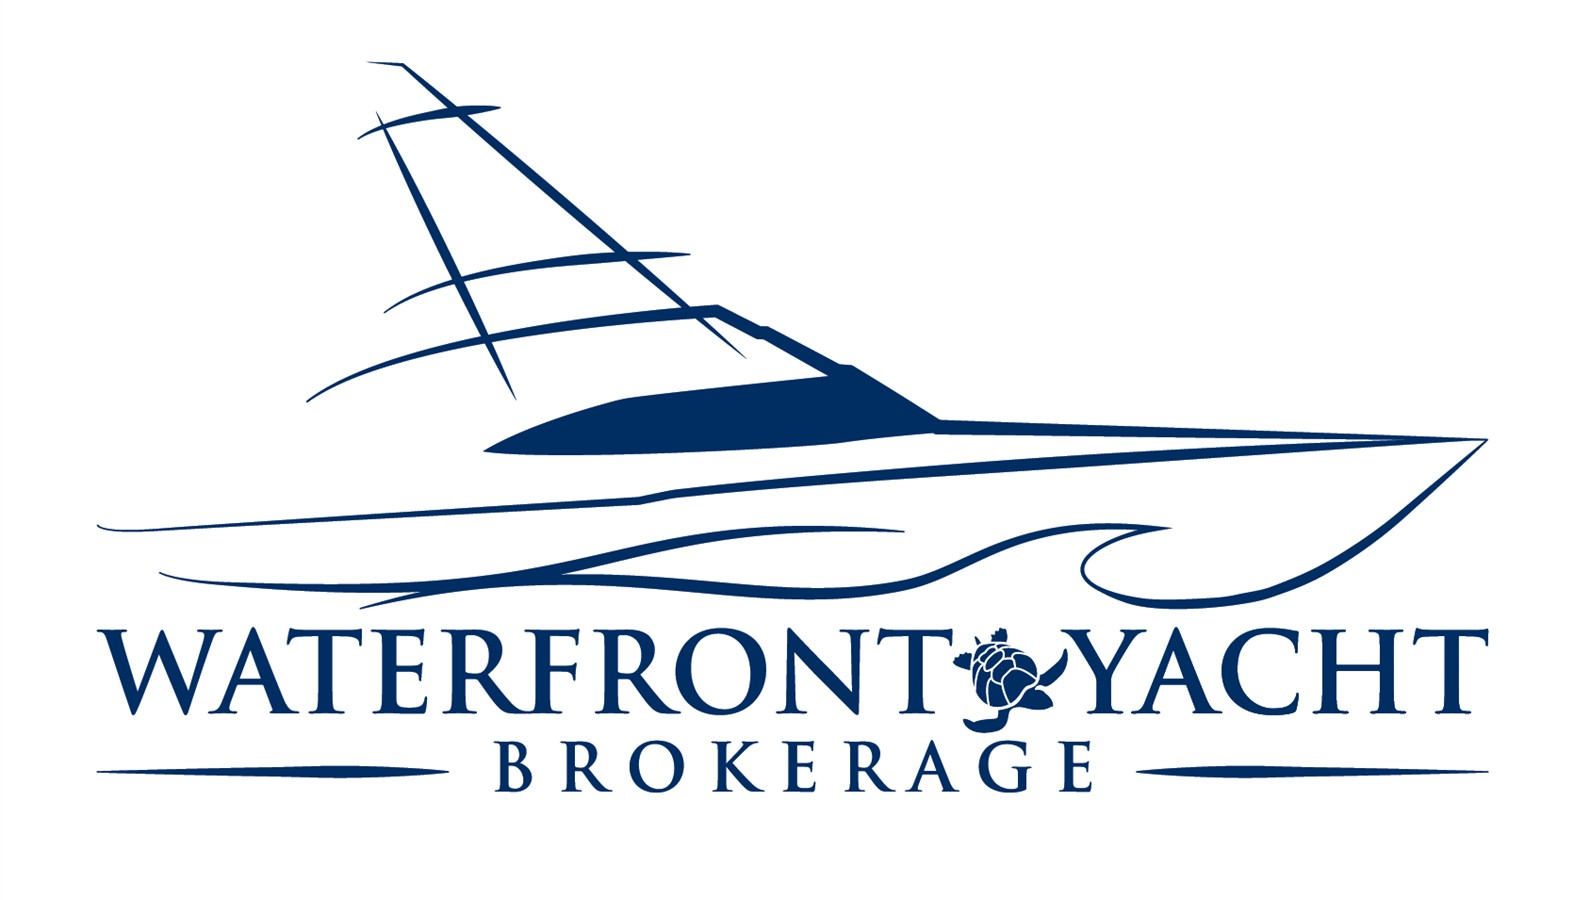 Waterfront Yacht Brokerage